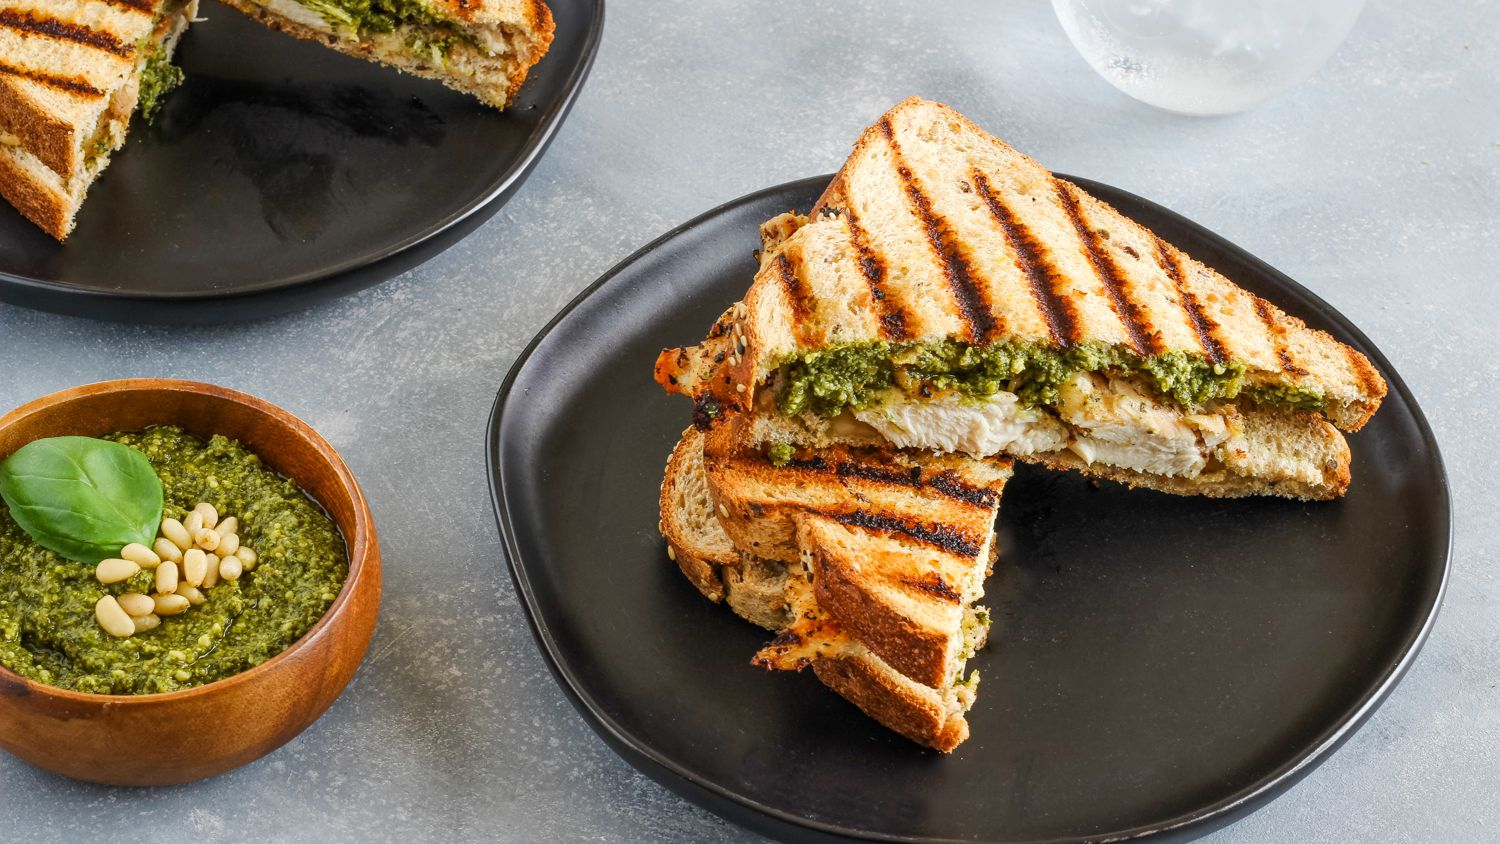 Grilled Chicken Panini Sandwich Recipe